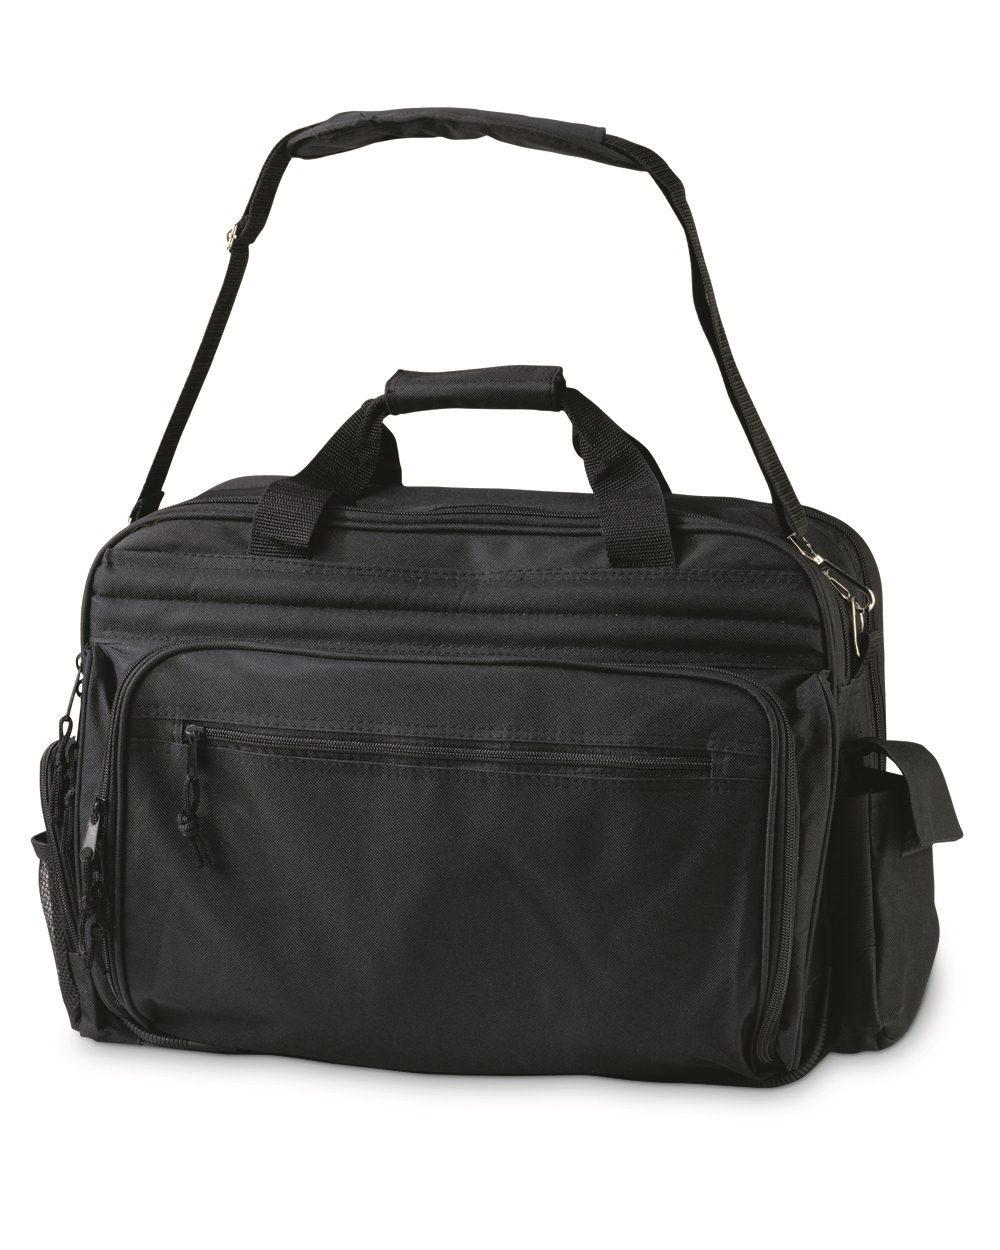 Valubag Large Laptop Briefcase - VB1155